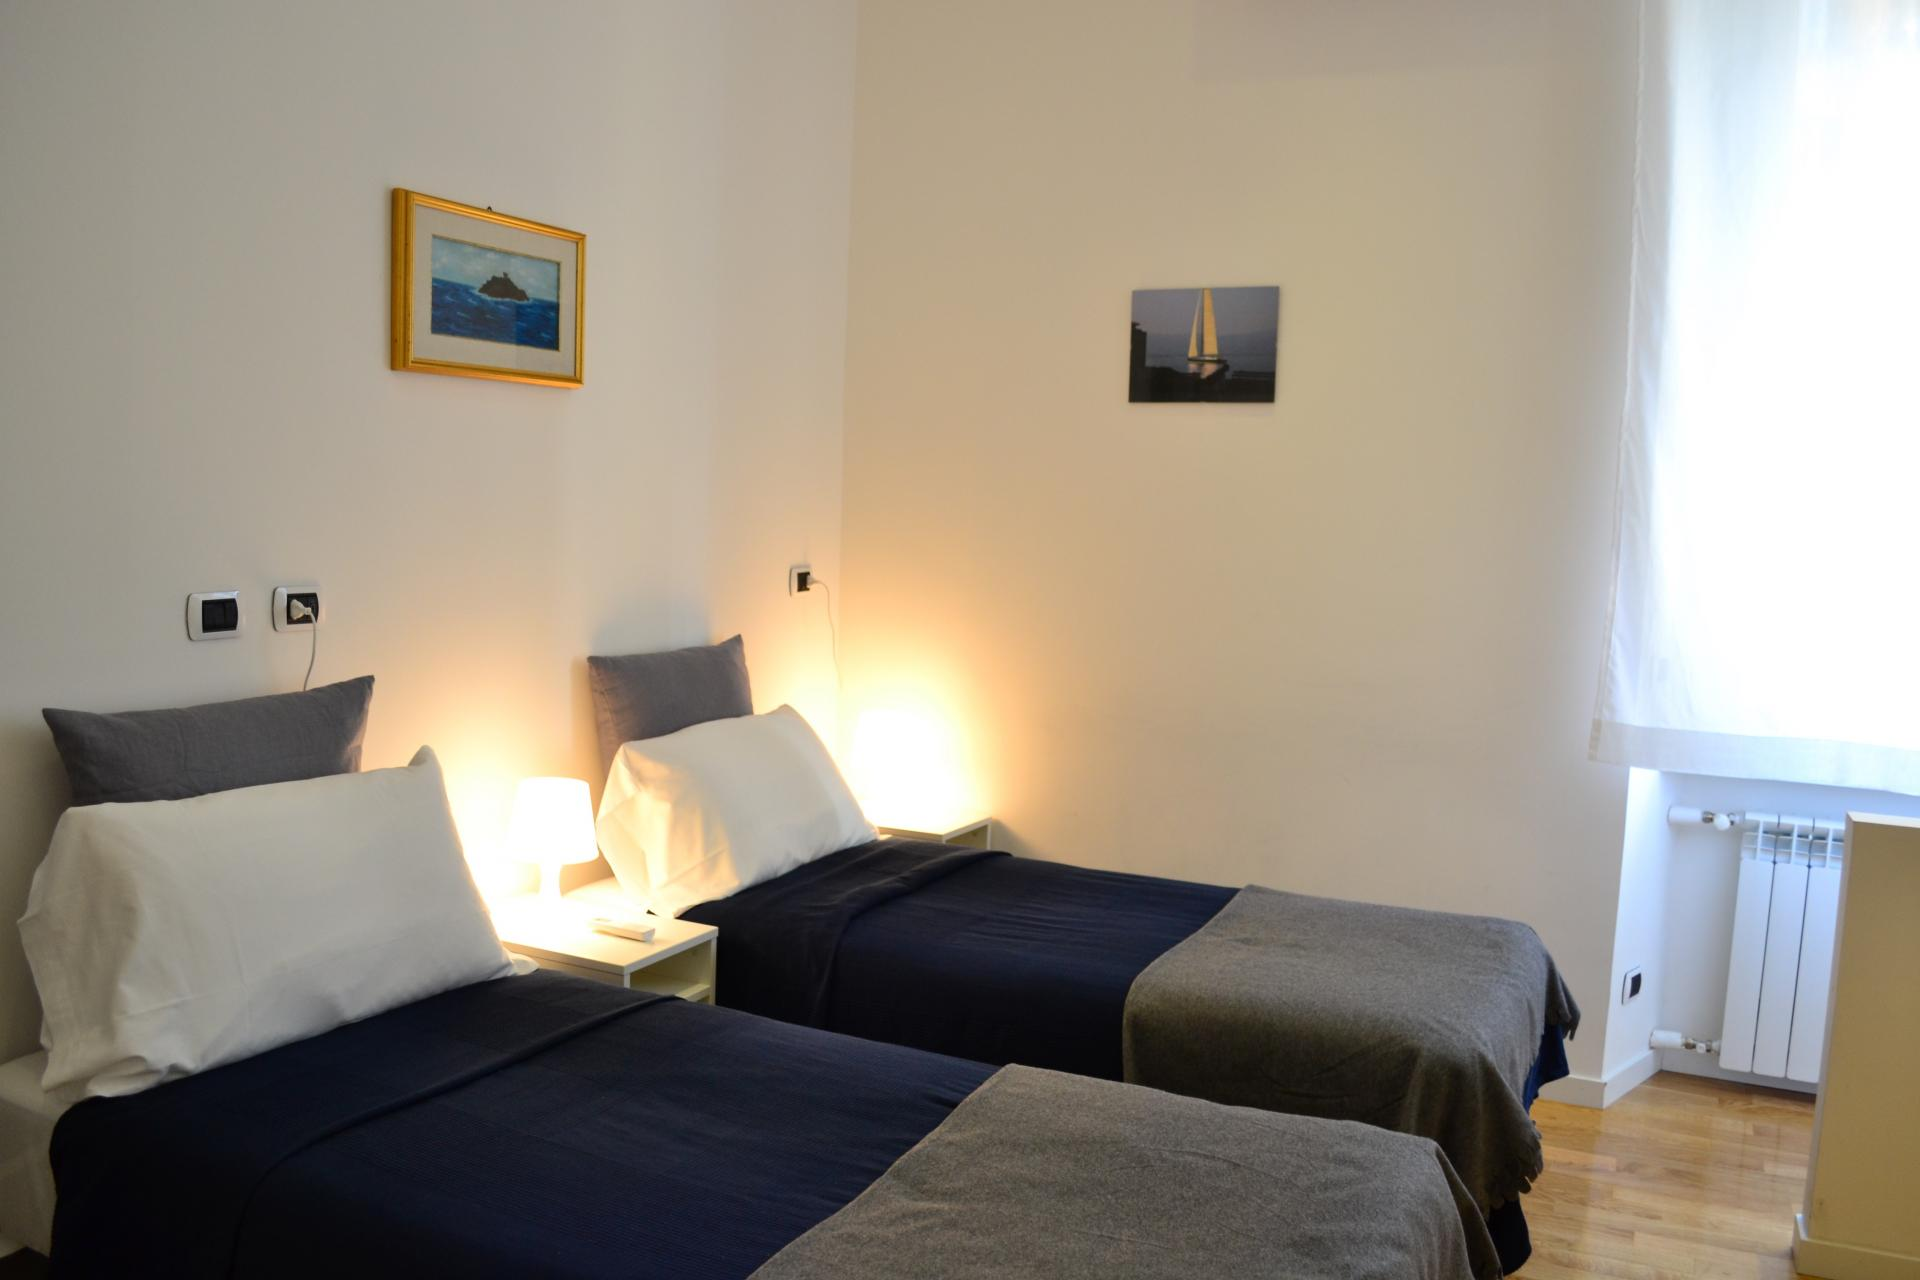 Twin beds at Angelico Grand Apartment, Prati, Rome